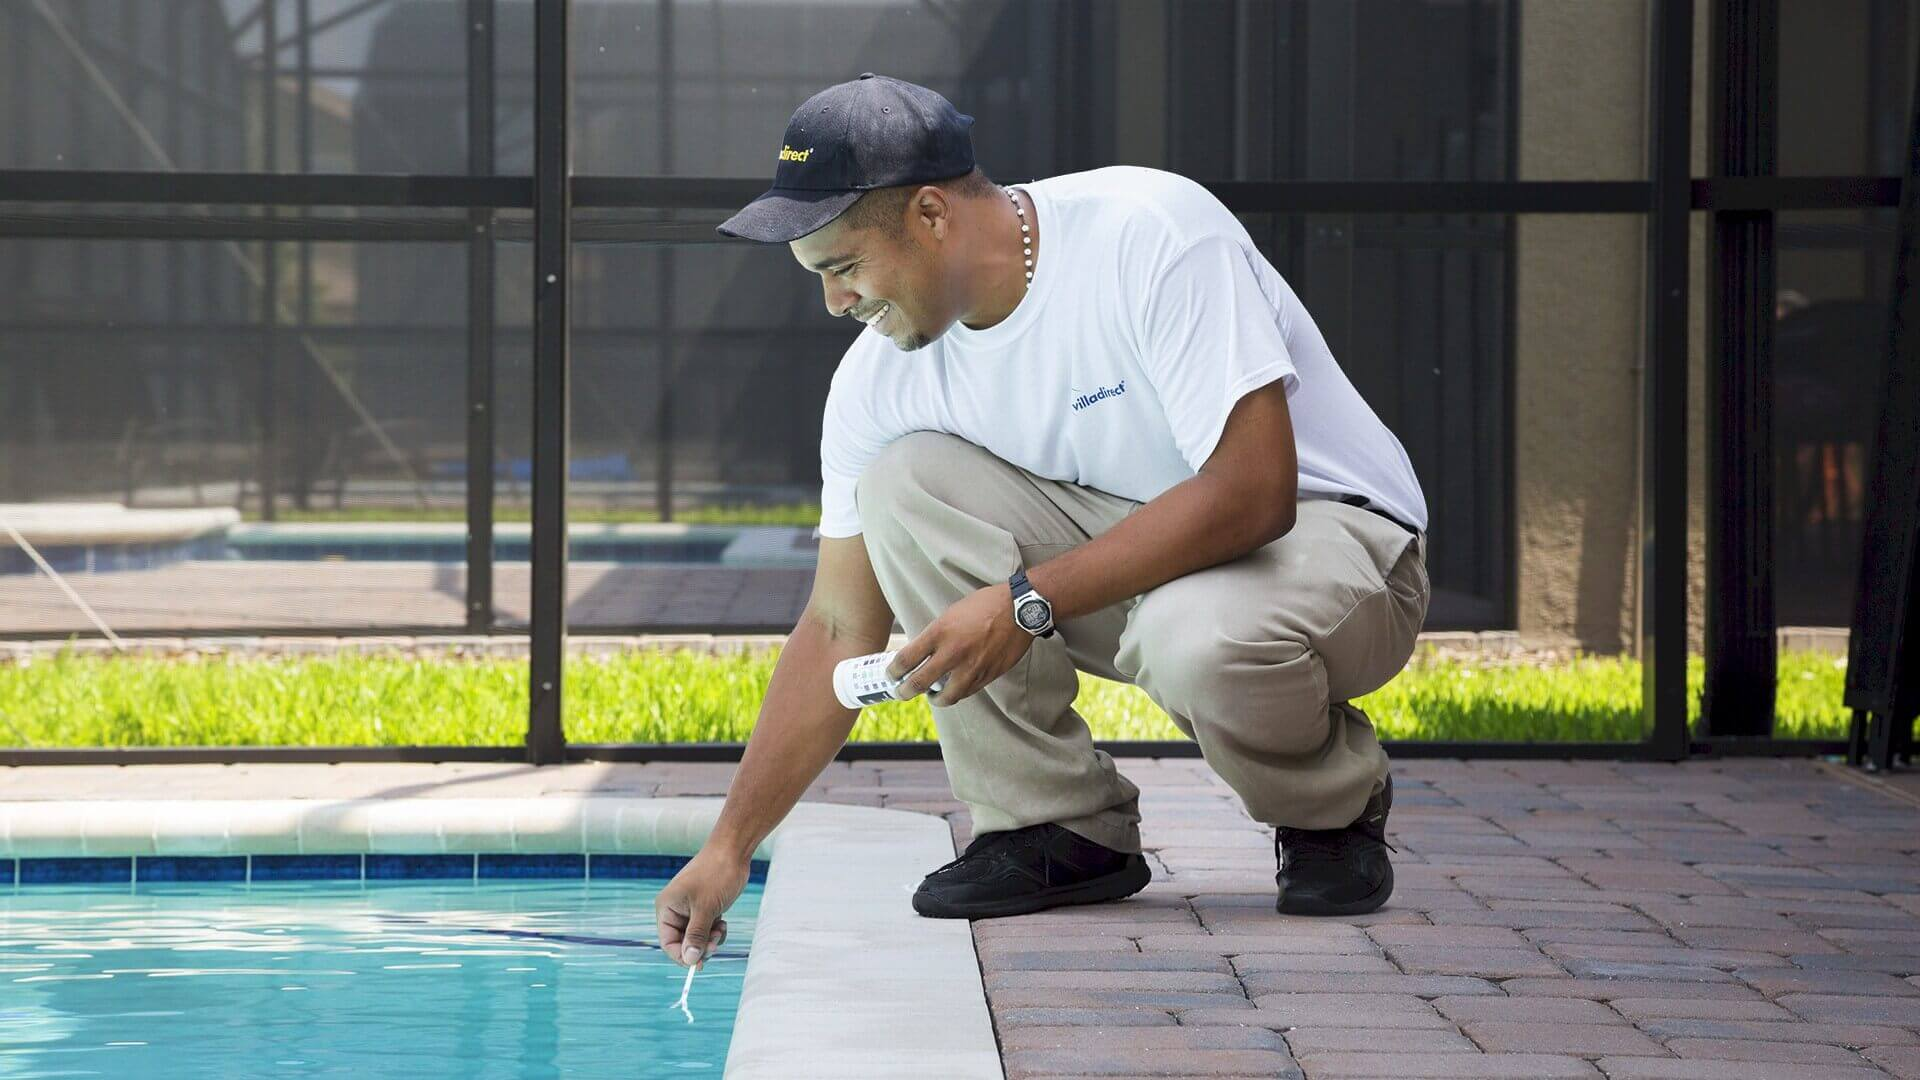 Pool technician testing water chemicals at ChampionsGate